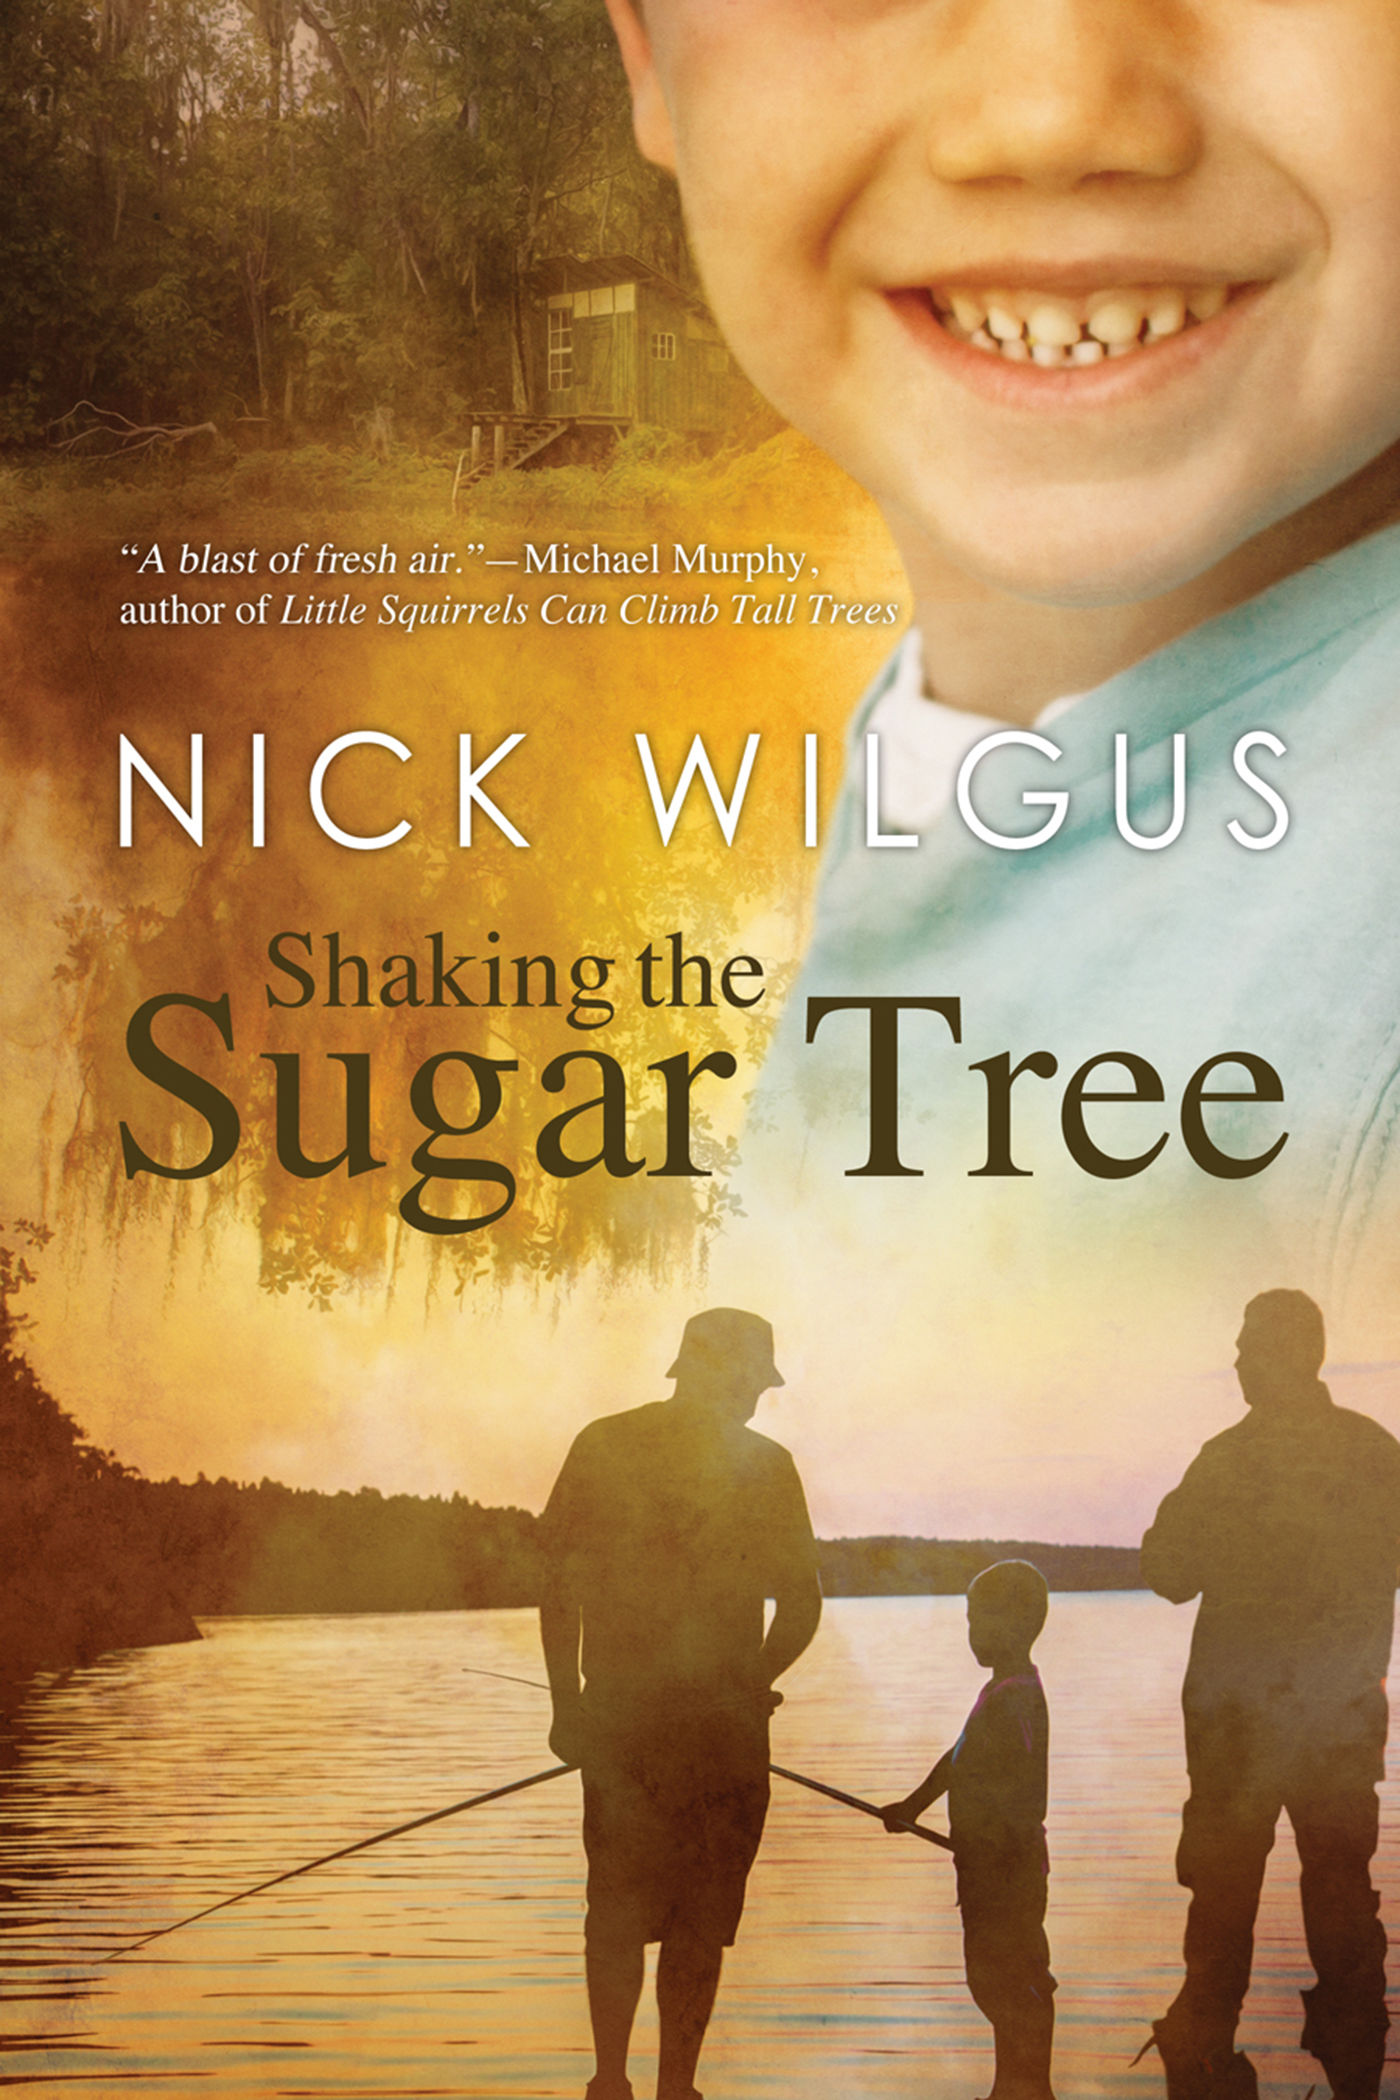 Review: Shaking the Sugar Tree by Nick Wilgus